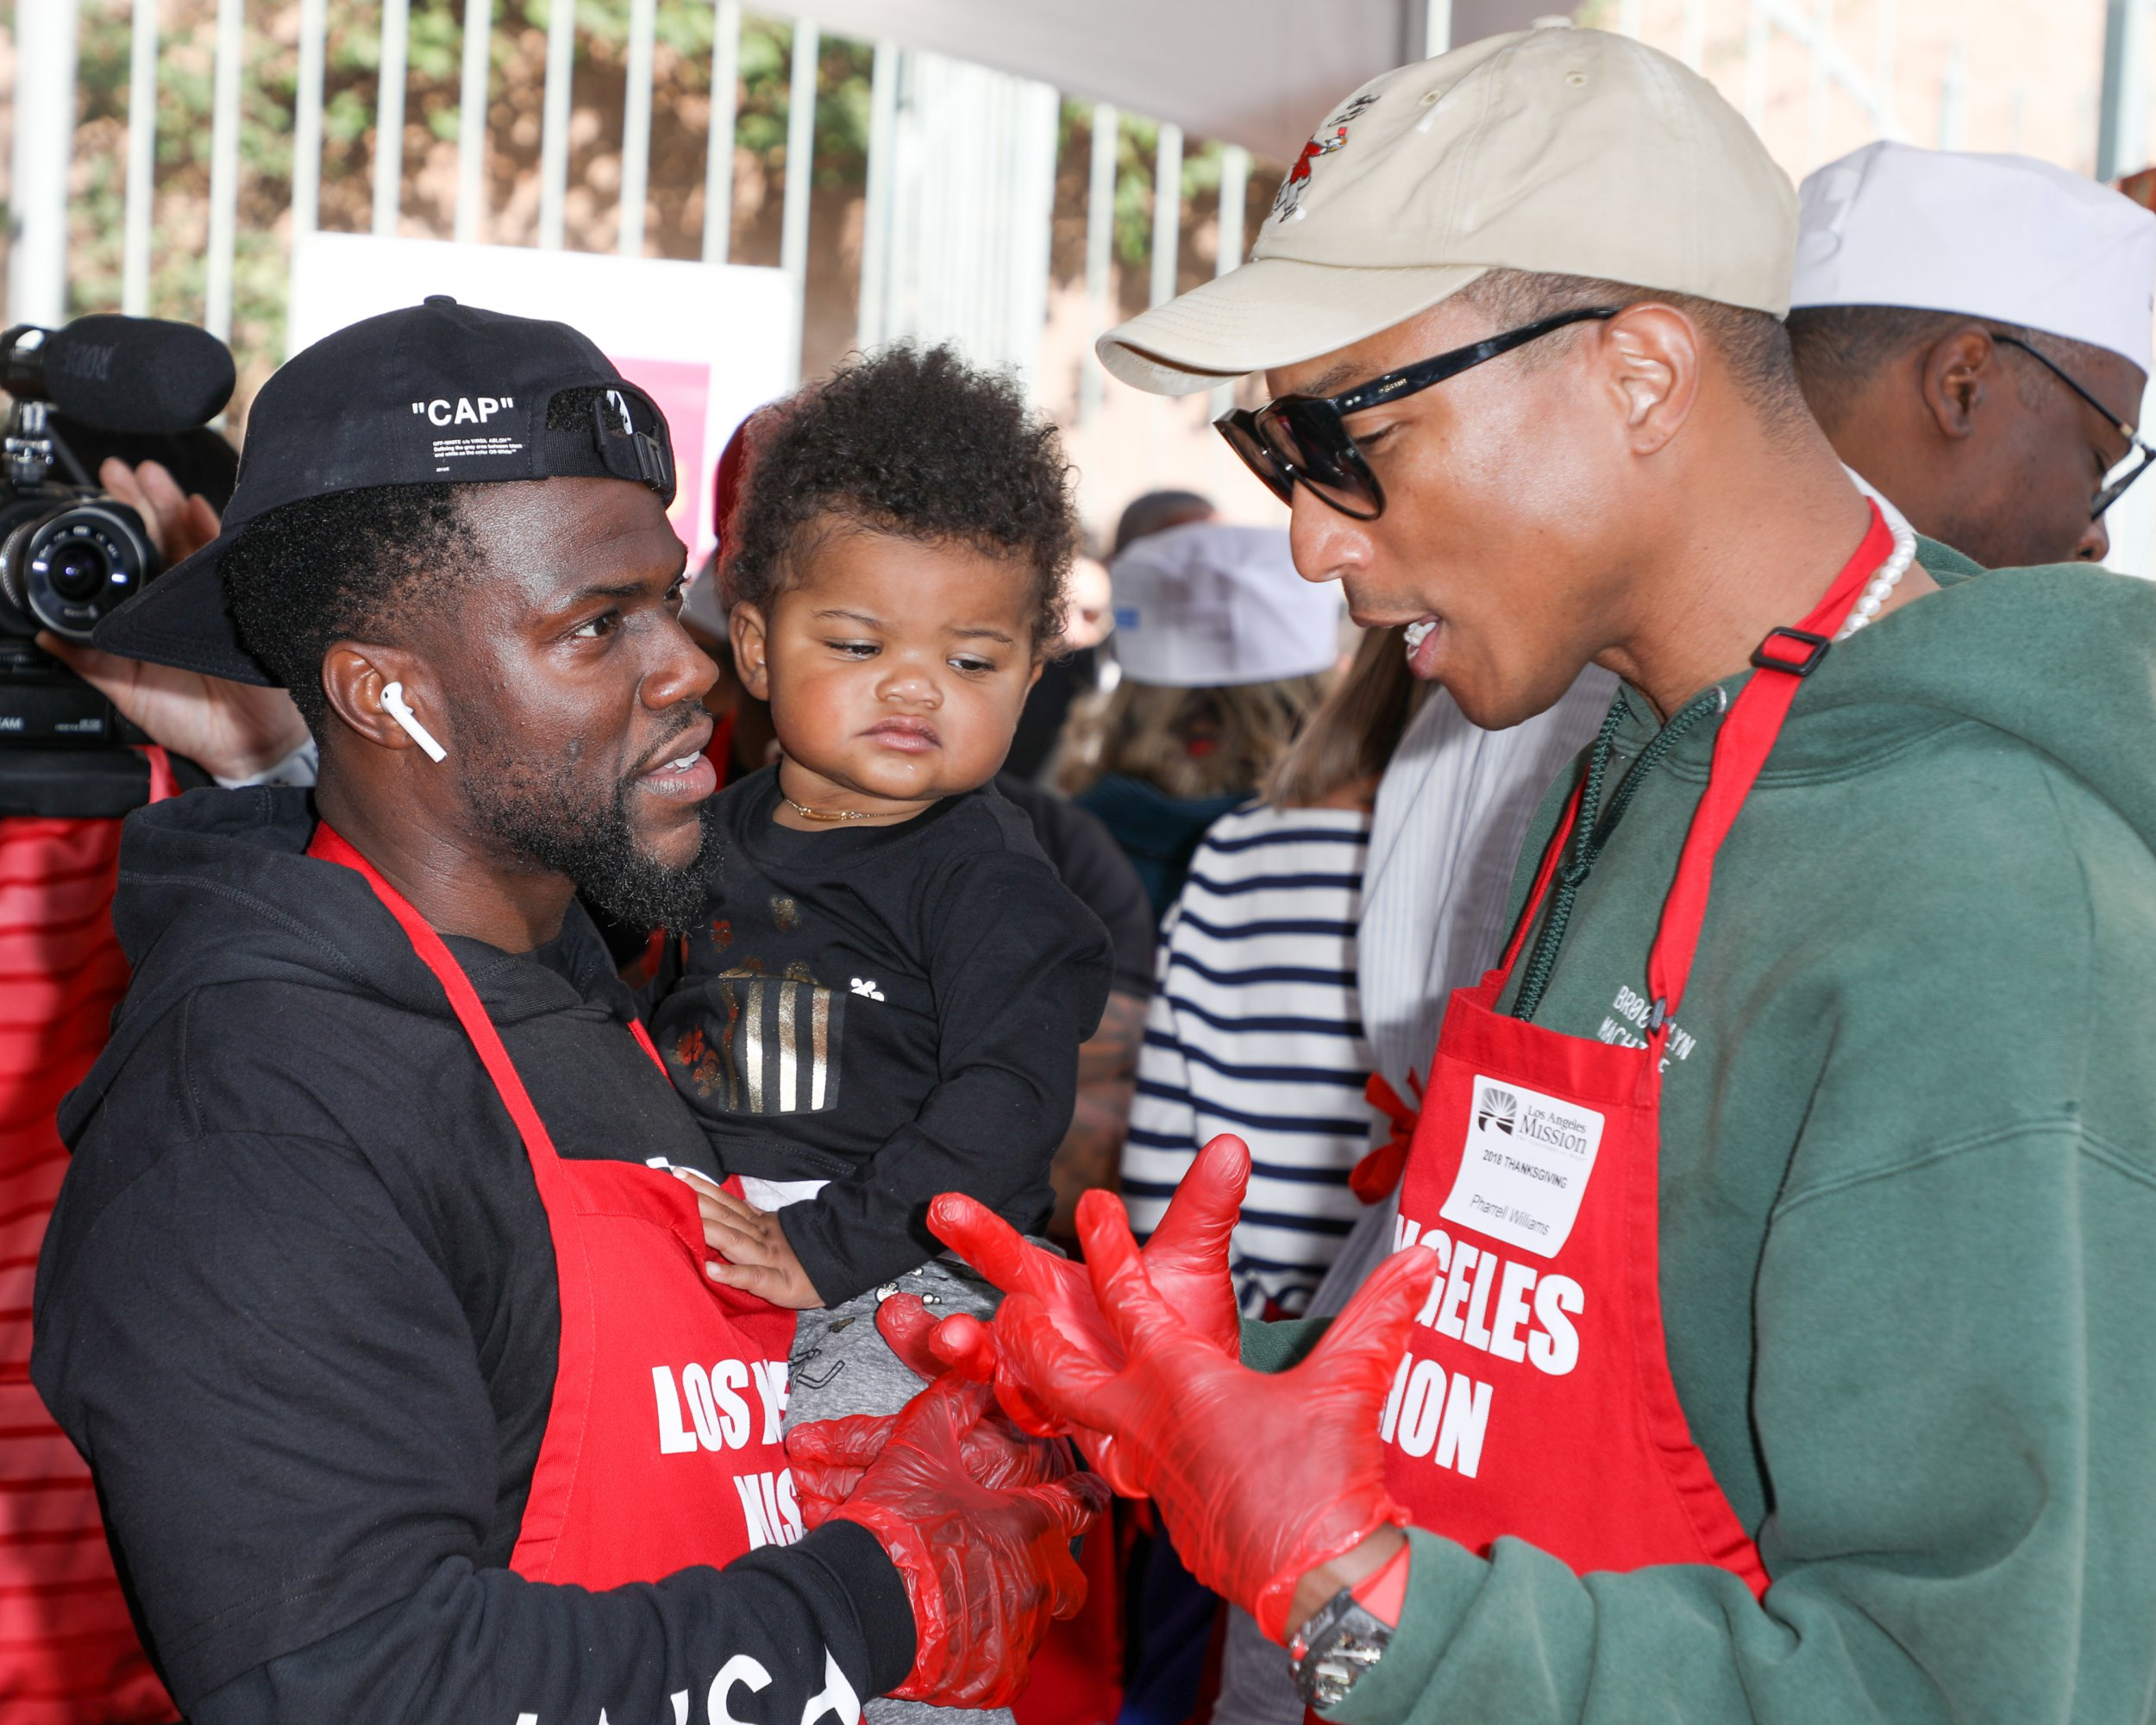 Kevin Hart and Pharrell Williams join volunteers to hand out Thanksgiving food to homeless